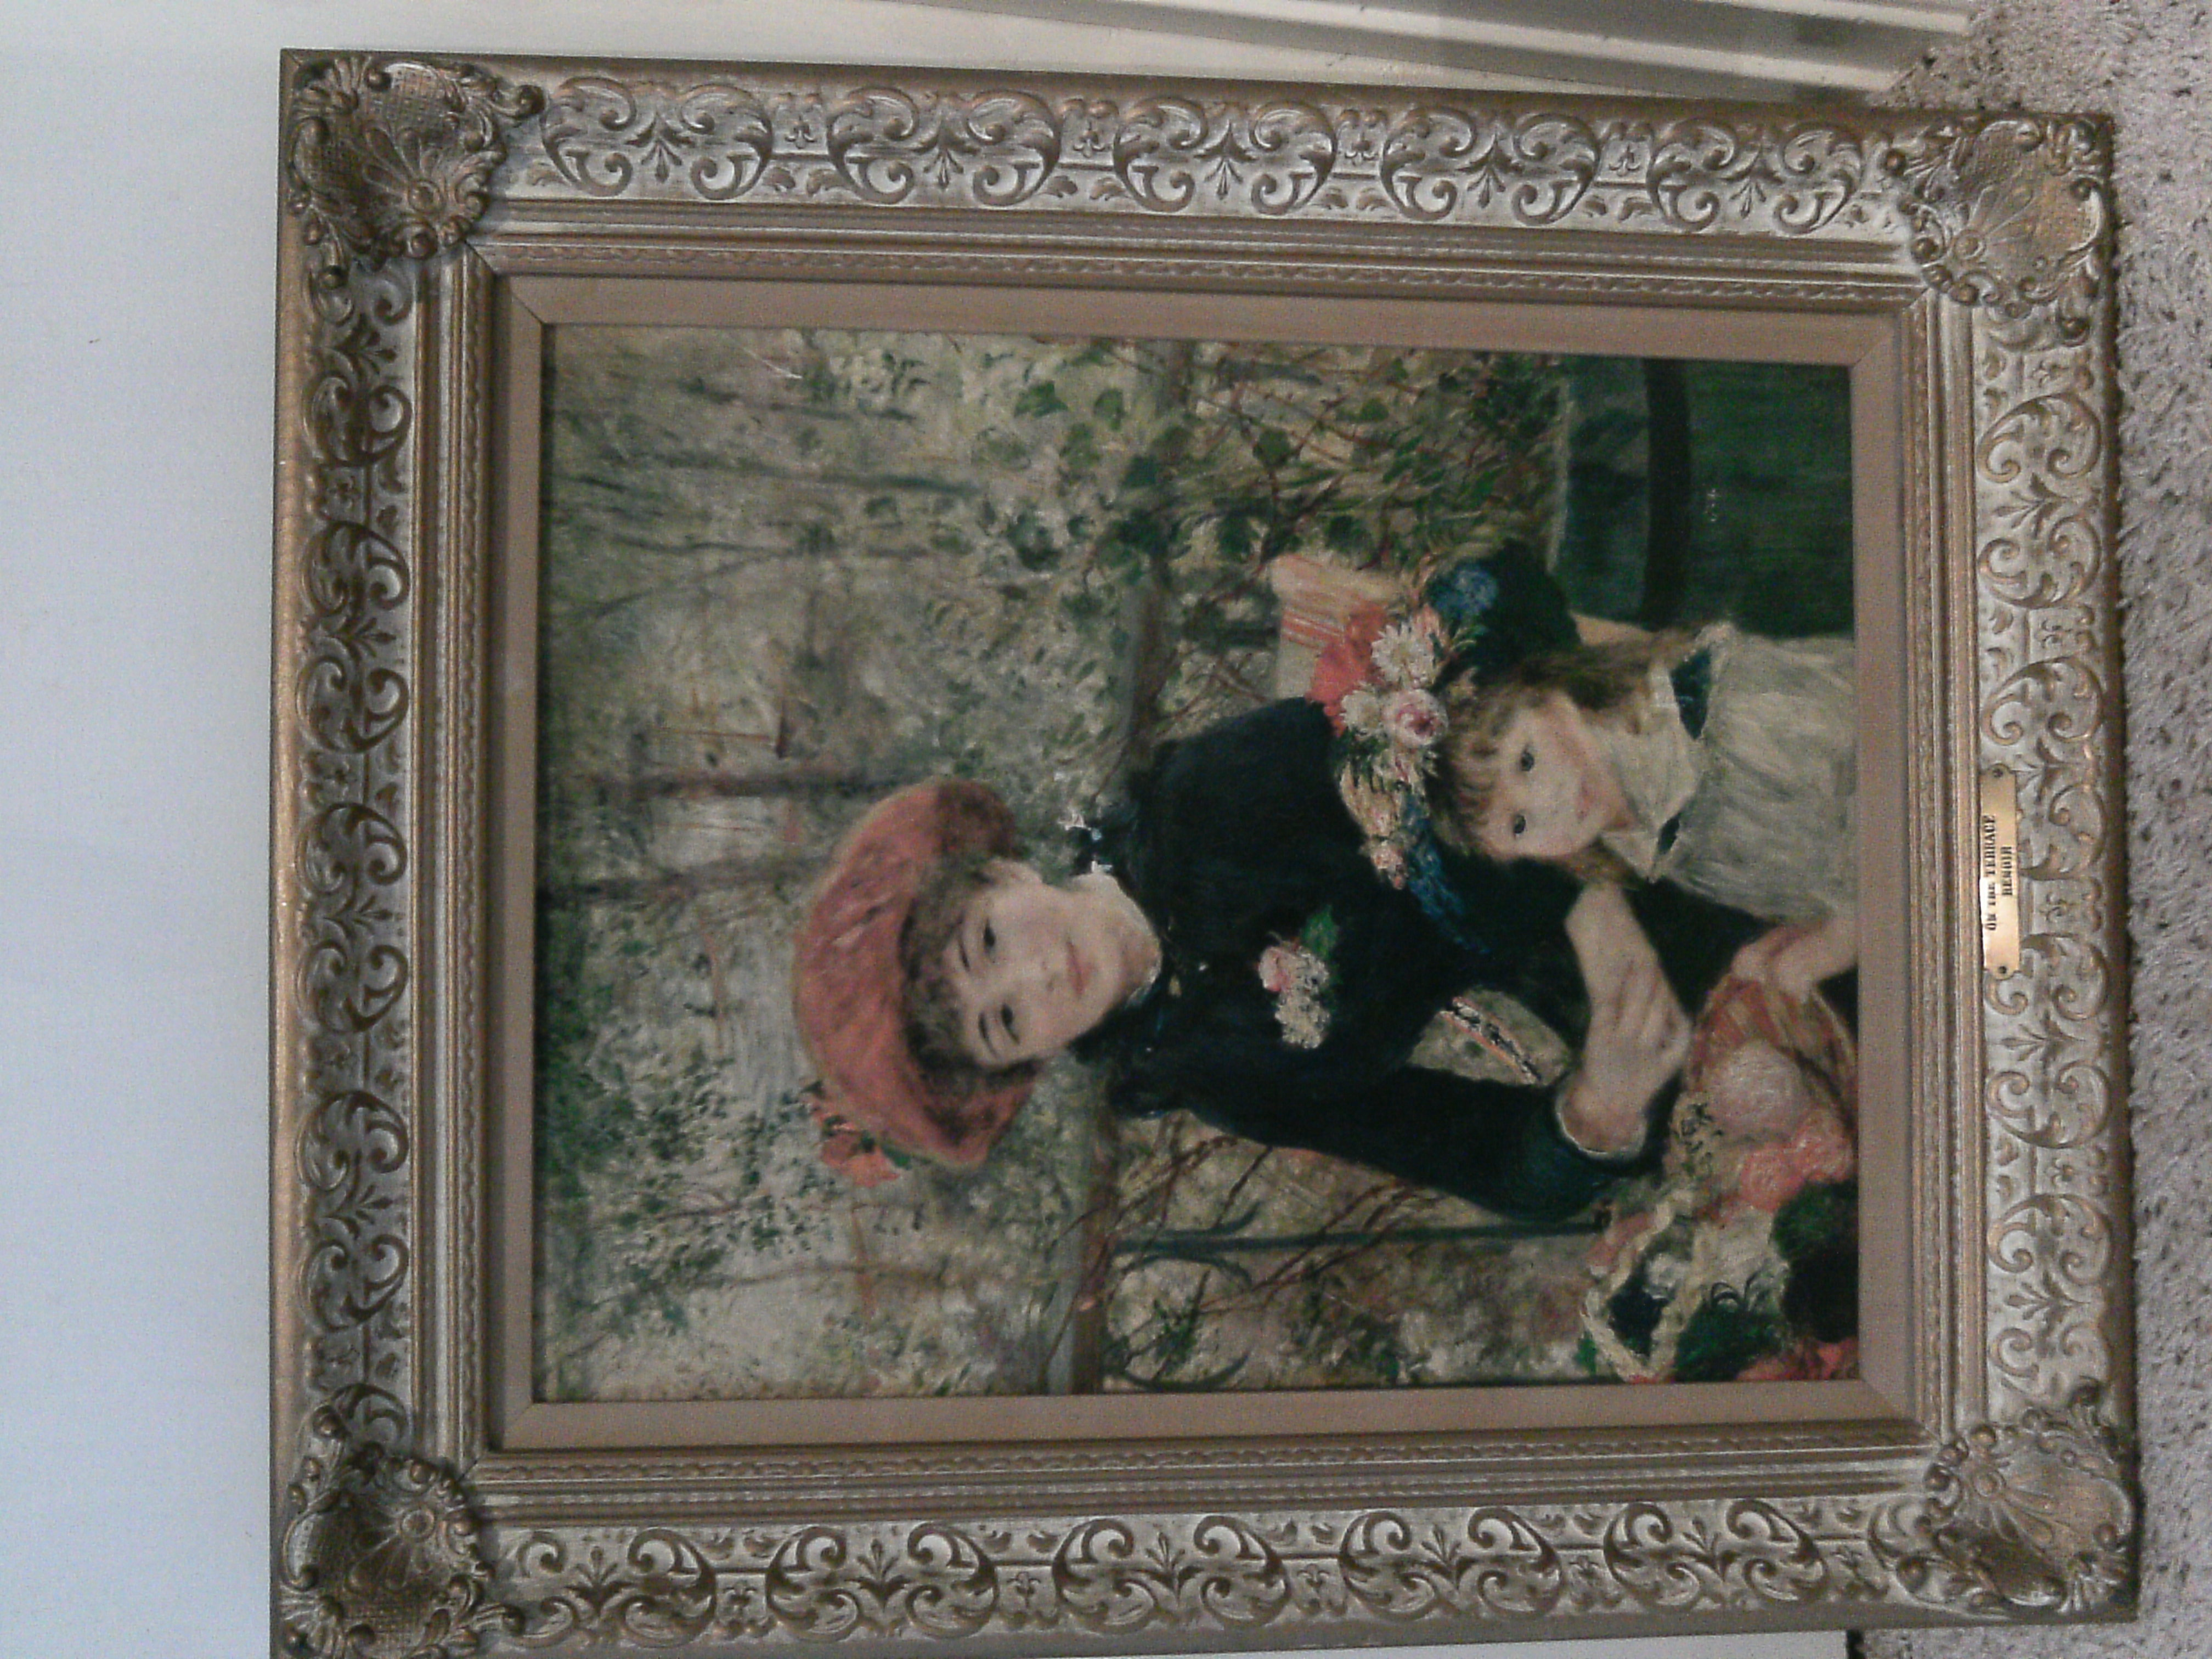 How much is a renoir painting worth mafiamedia for How much is my painting worth